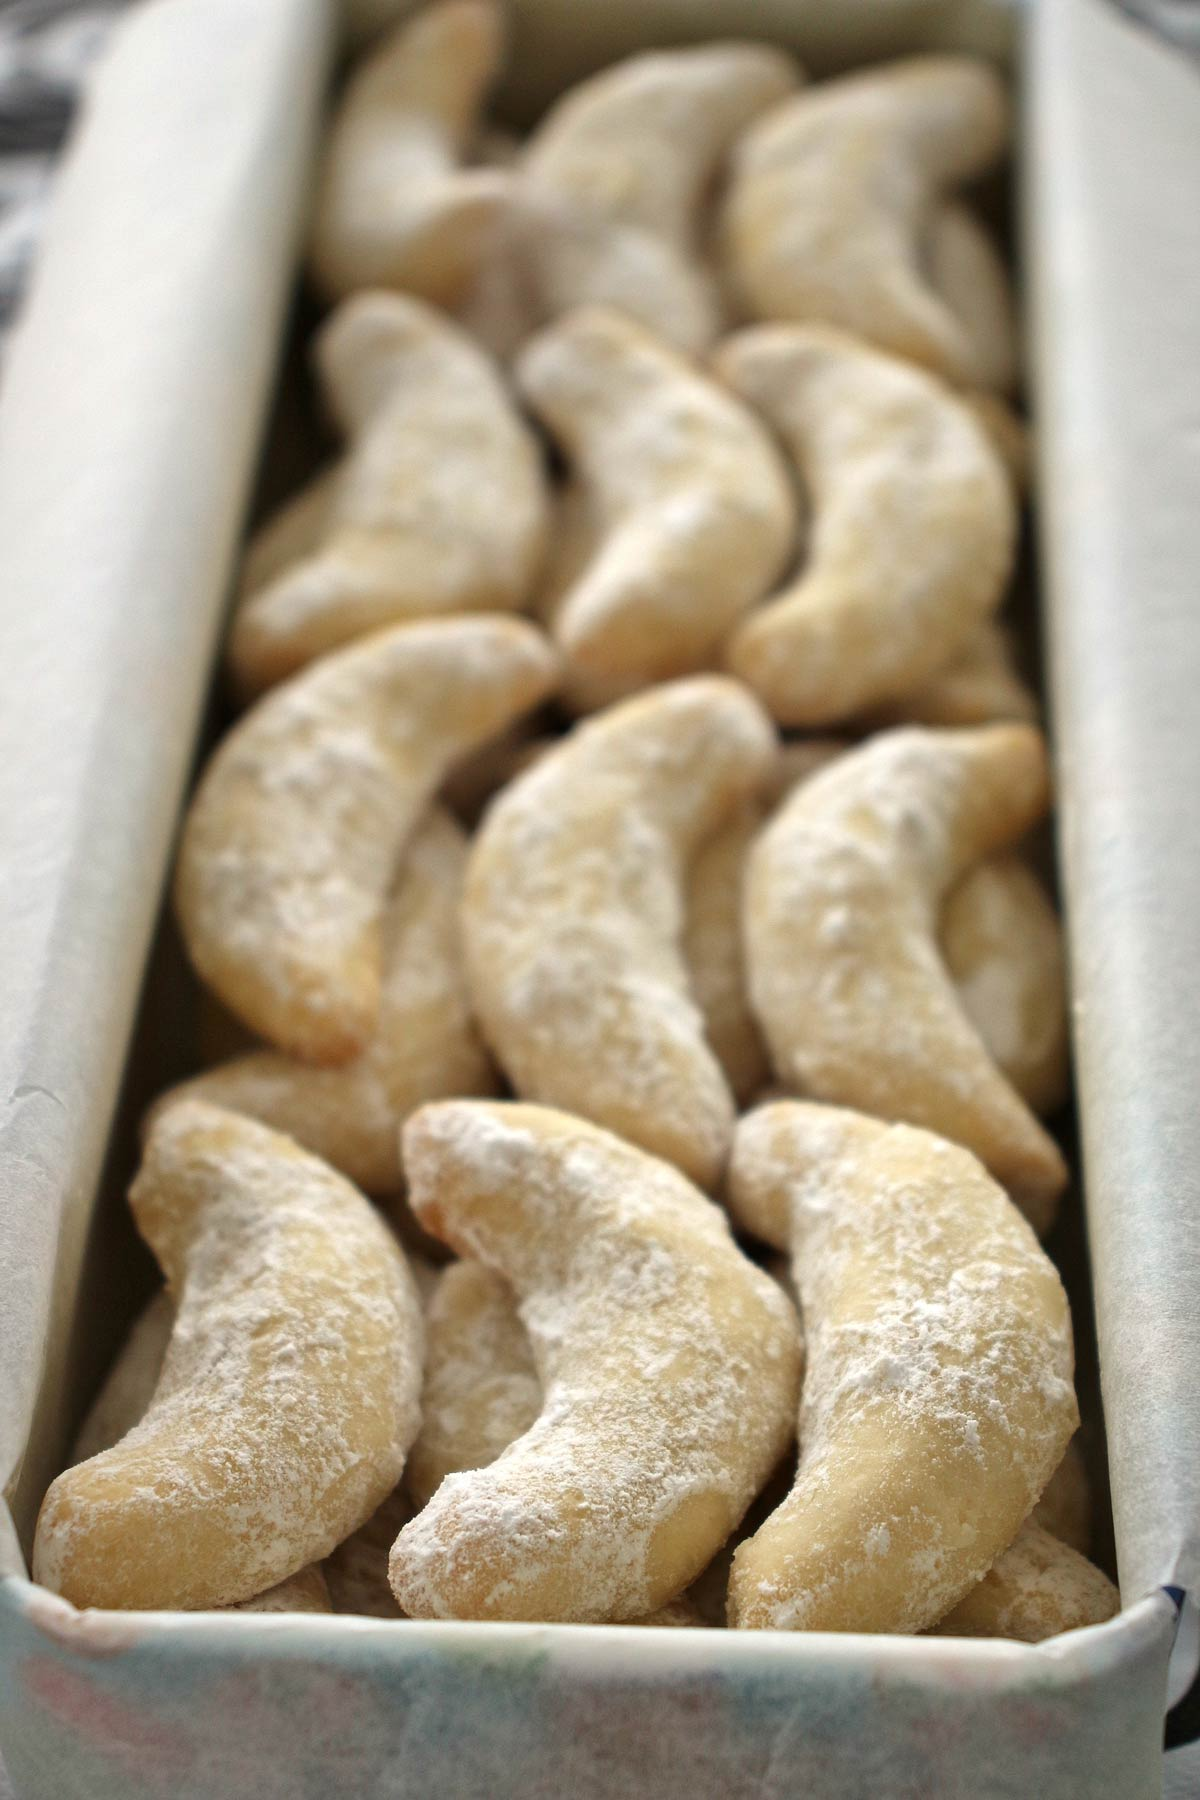 Closeup of a rectangular cookie tin filled with vanilla crescent cookies dusted with powdered sugar.